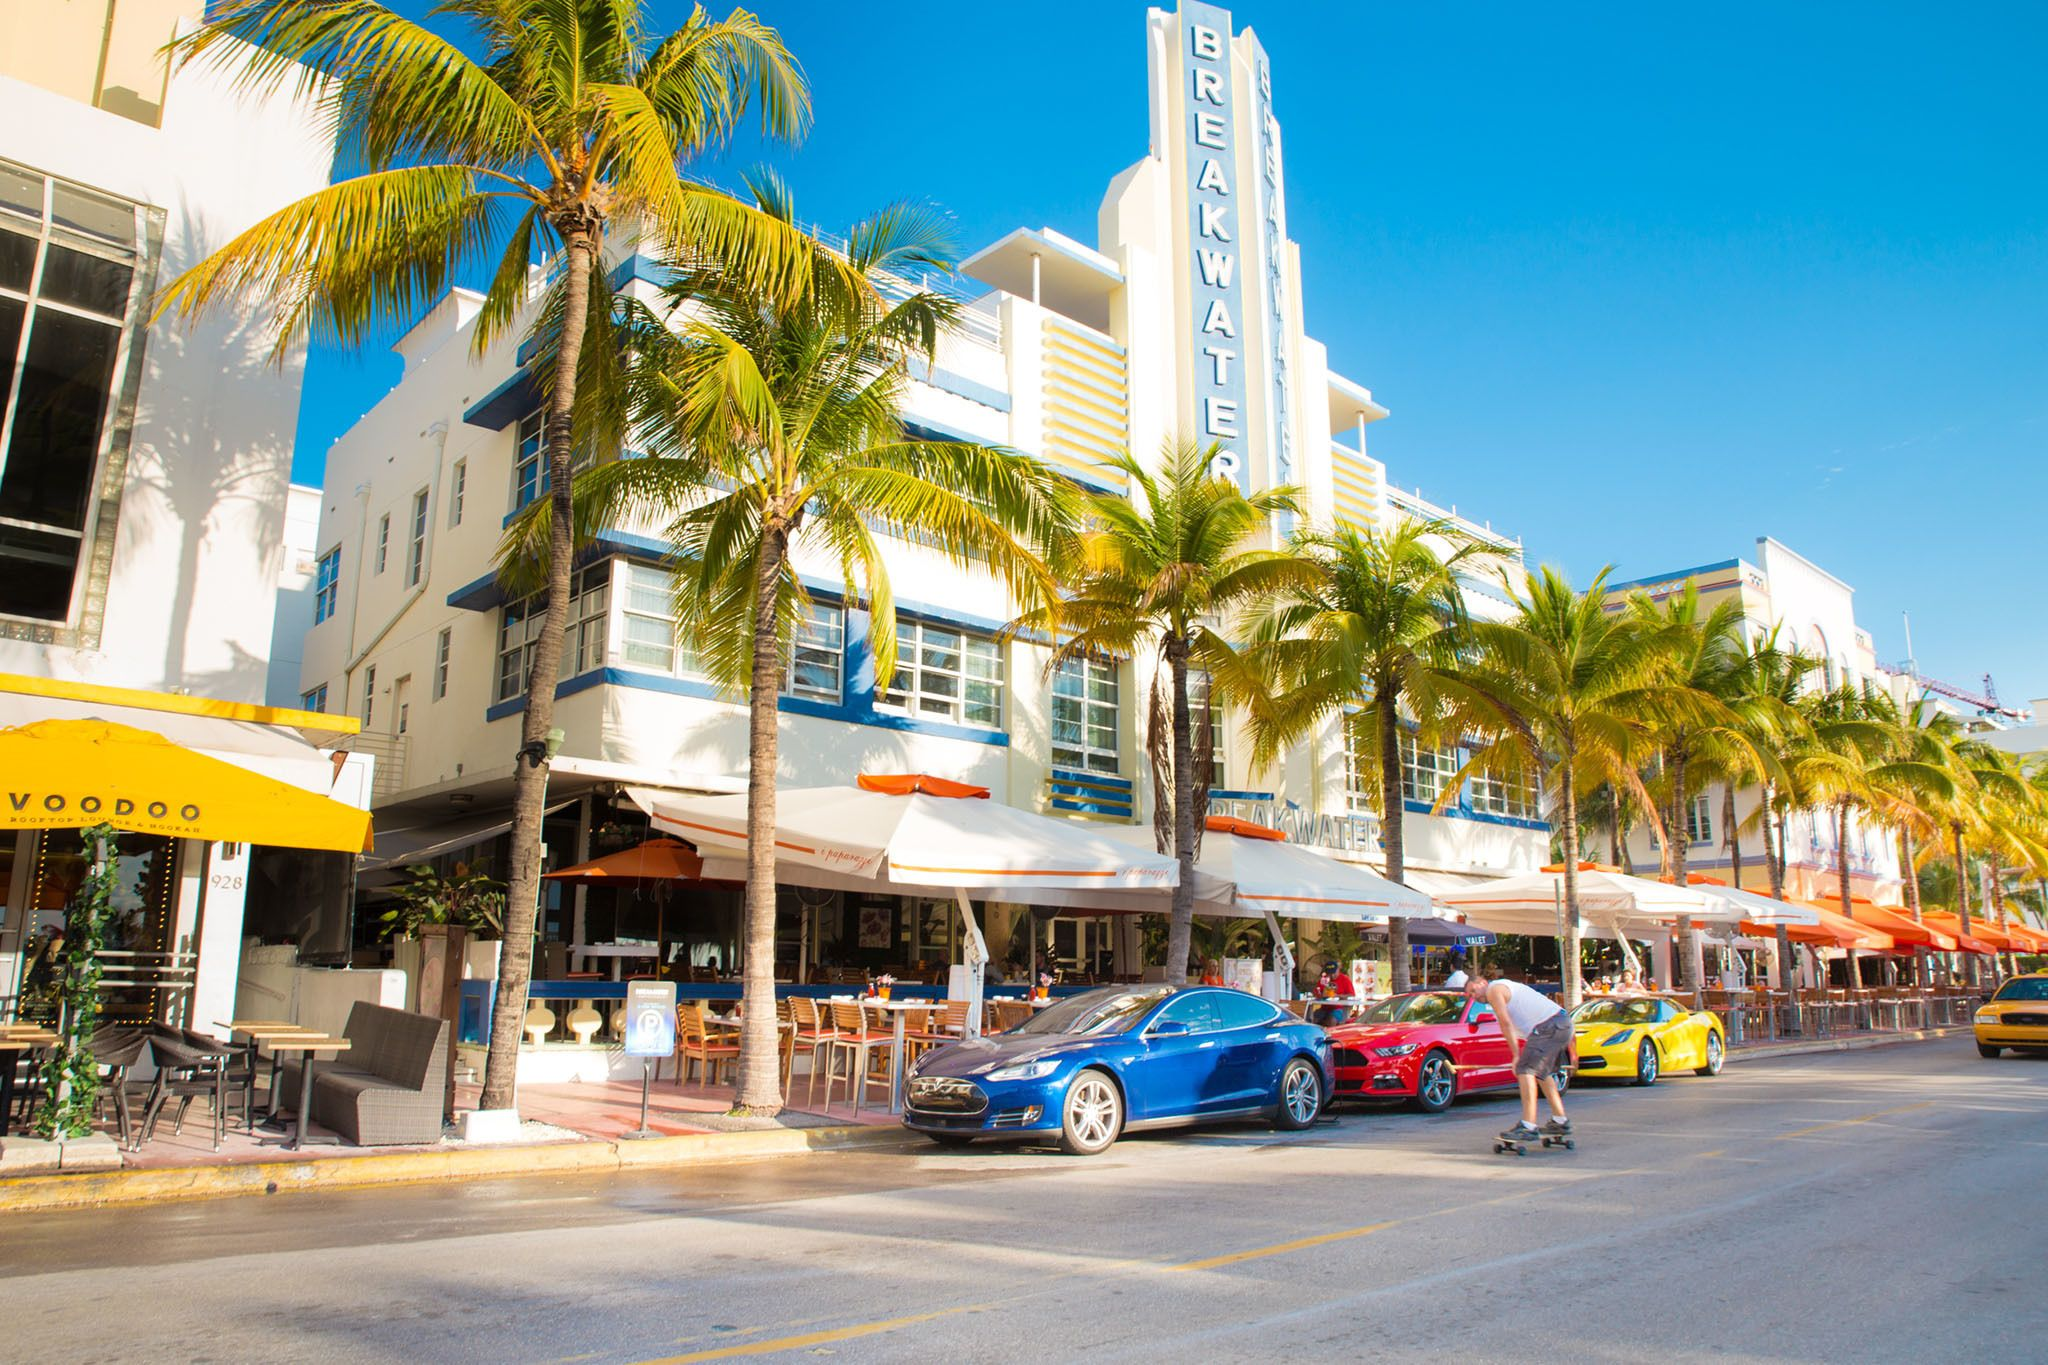 Follow Our Guide To The Best Things Do In Miami From Cuban Restaurants